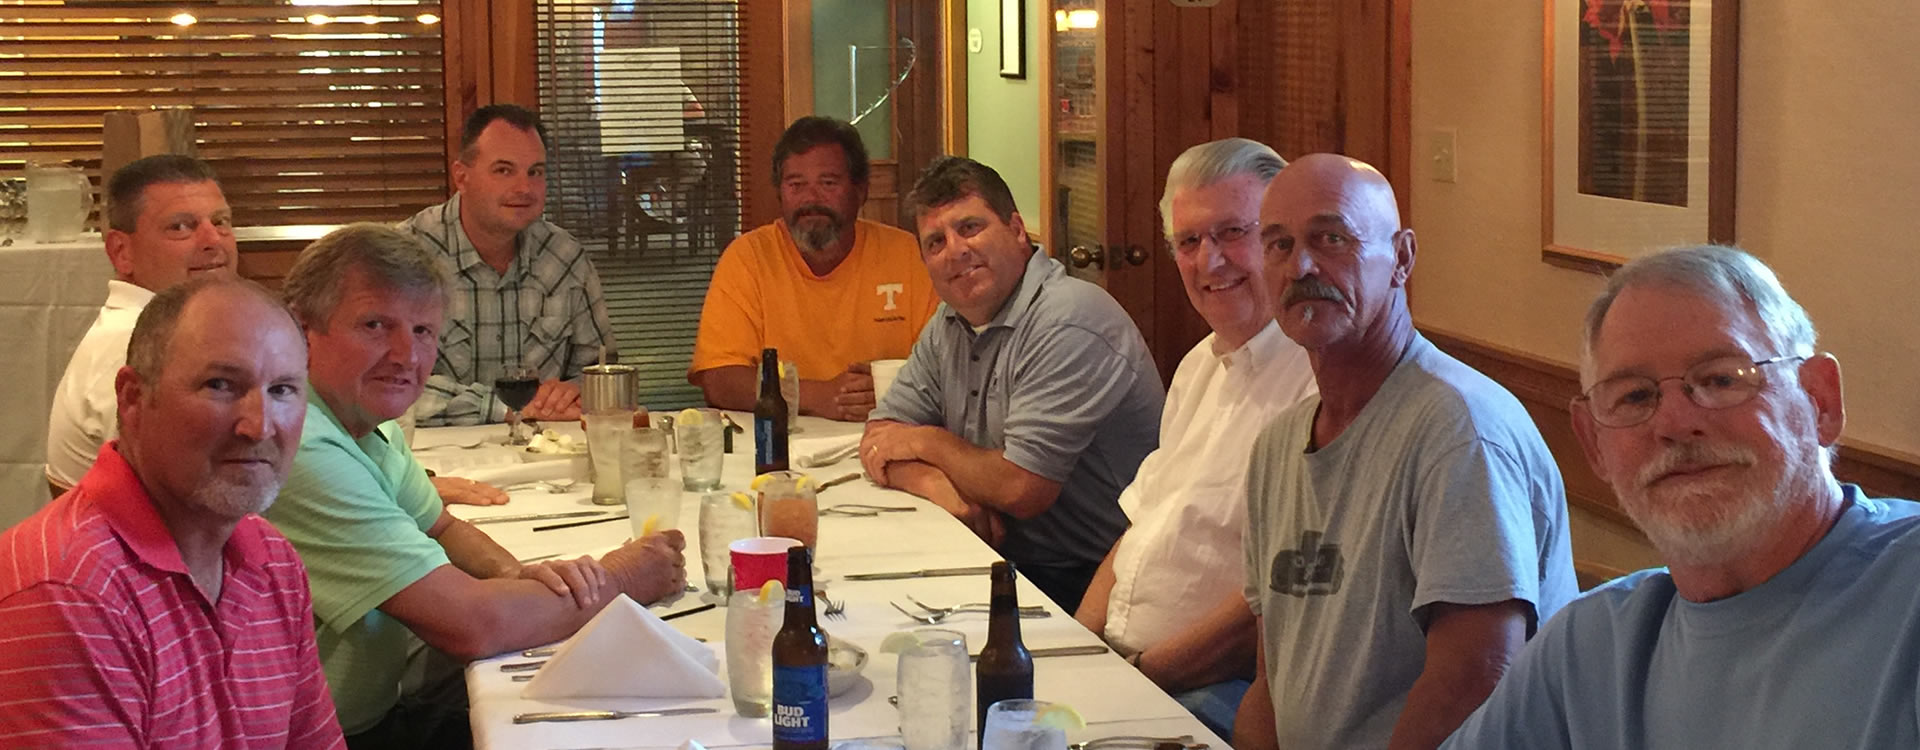 (from left to right) Eric Brown, Johnny Kown, Derek Strange, Bill Chandler, Bobby Newman, Thad Campbell, BR Roberts, David (T-Bone) Tipton, Buster Hudson